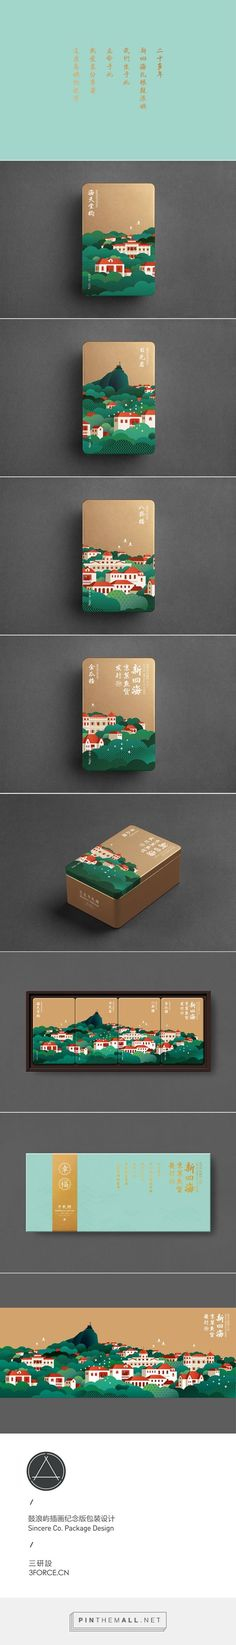 Sincere Co. Nougat Packaging / 新四海牛軋糖包裝設計 on Behance - created via https://pinthemall.net